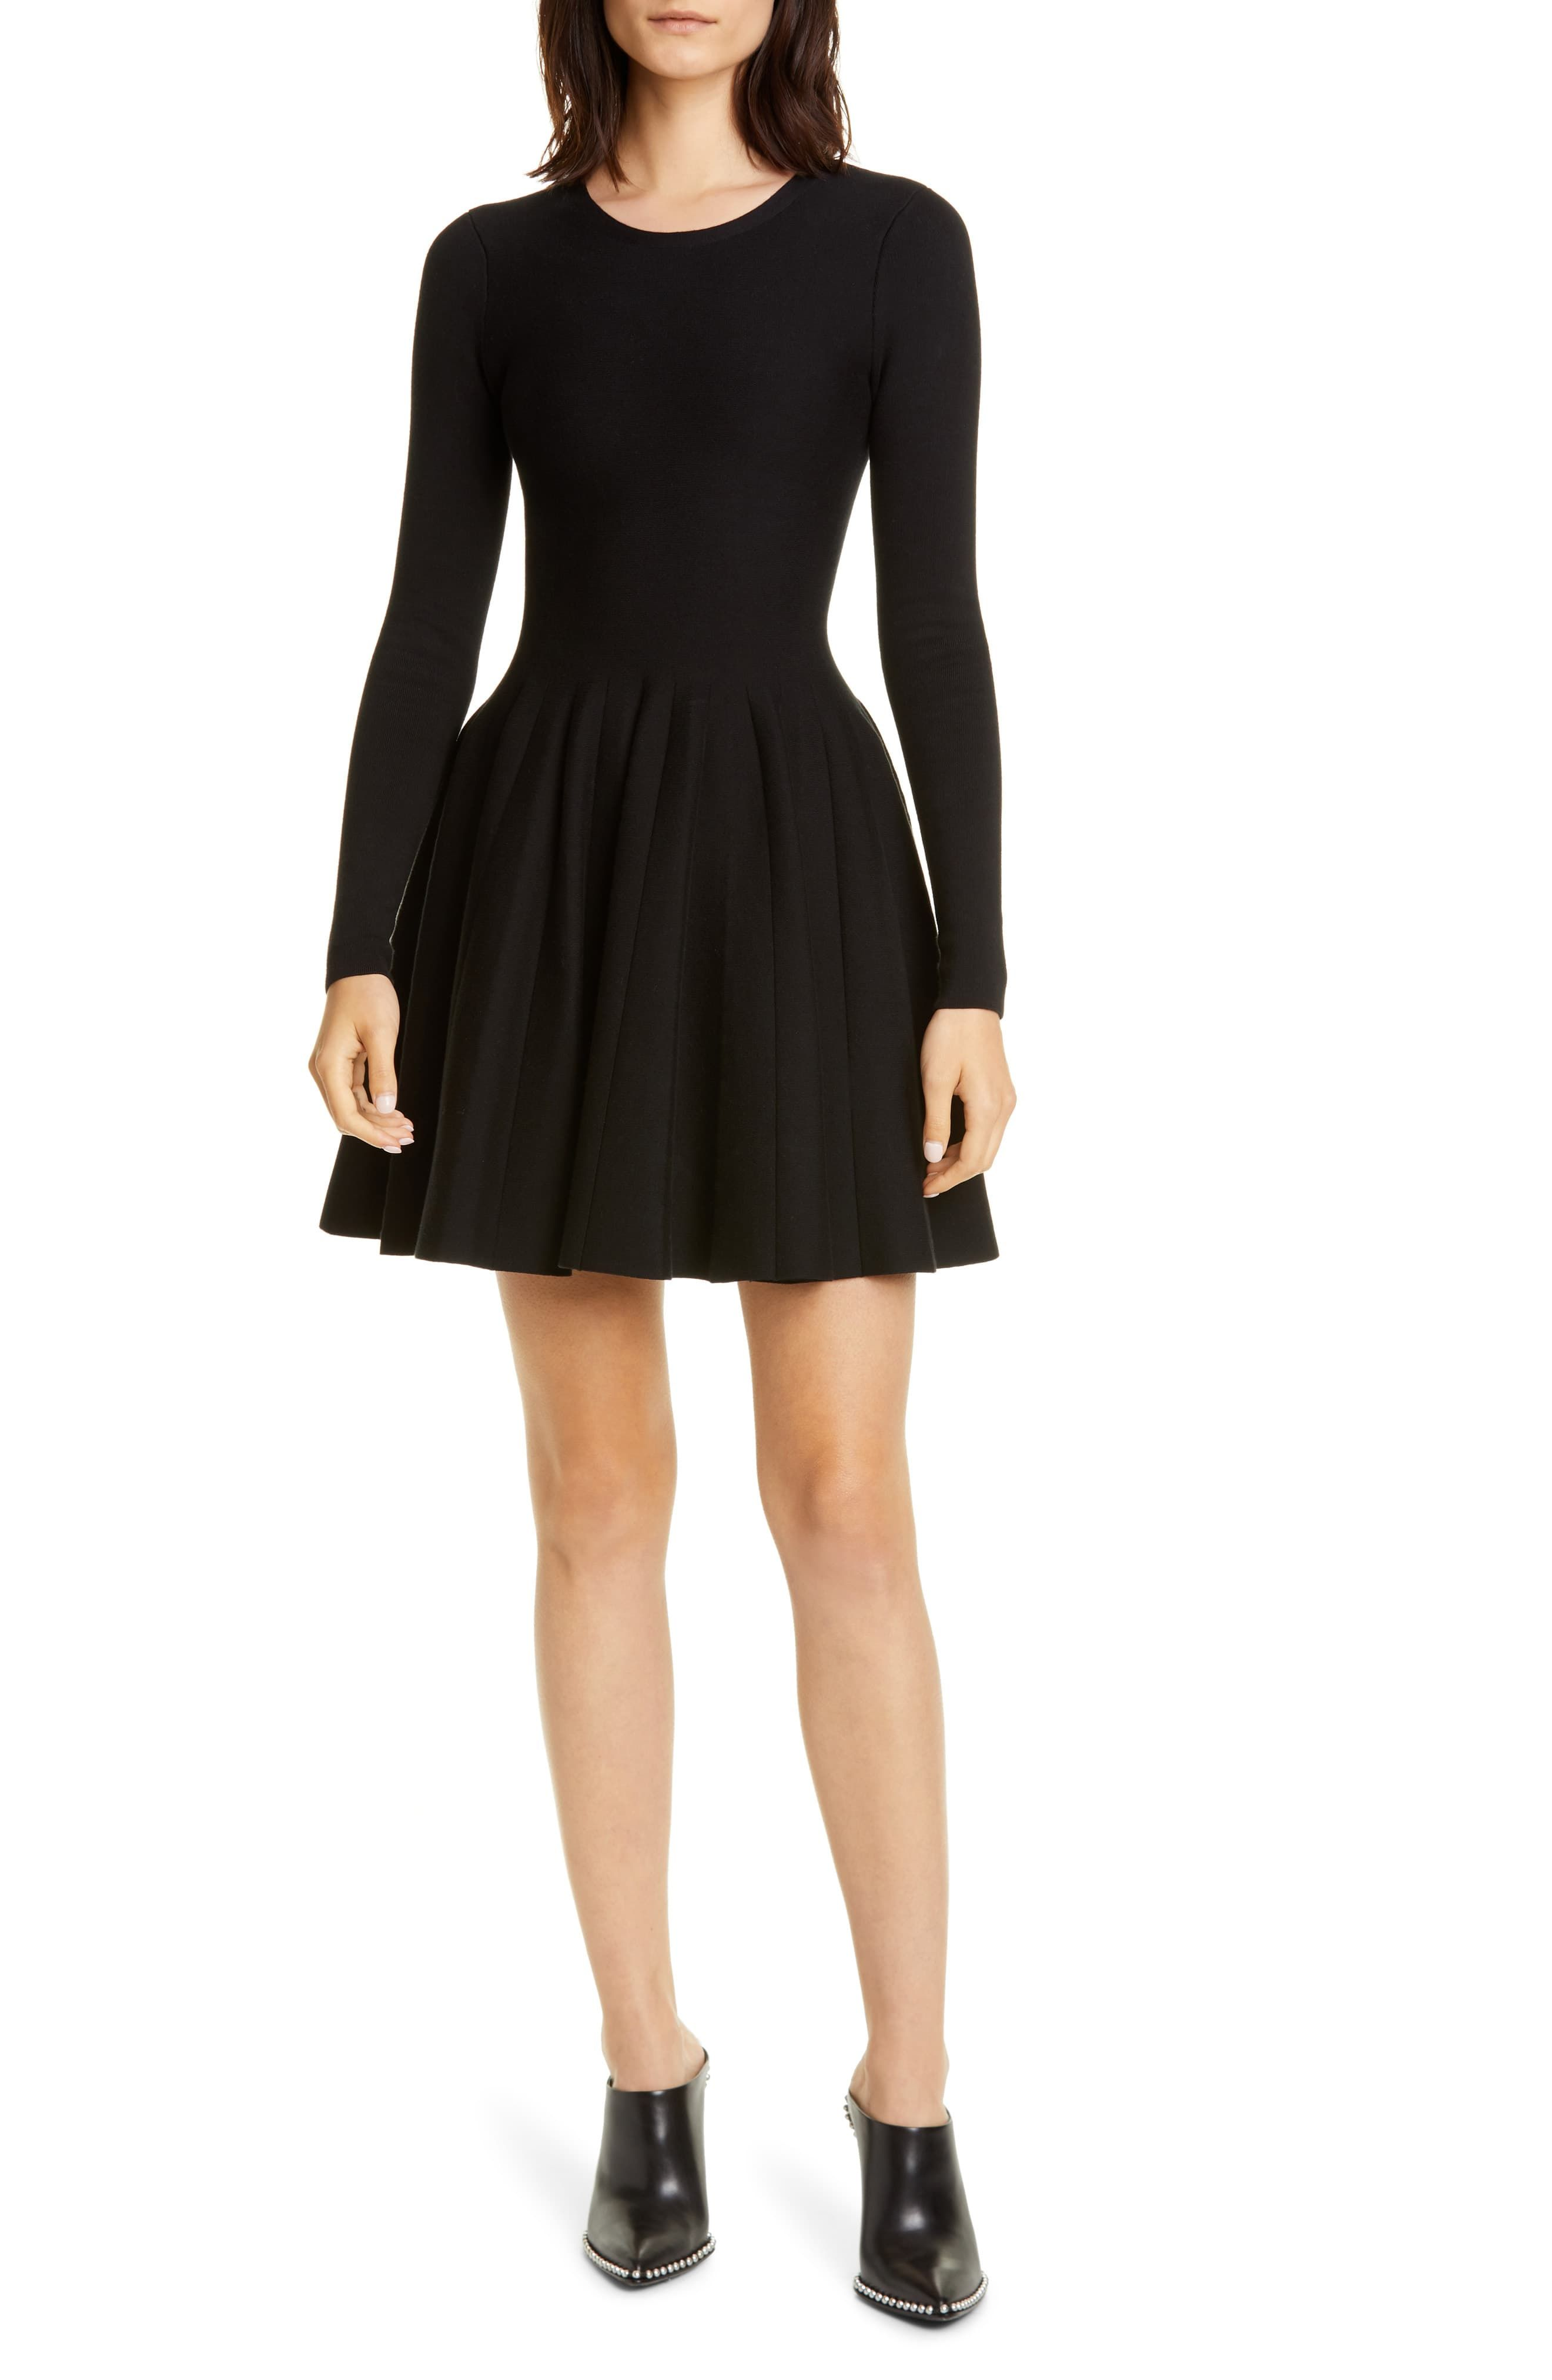 Women S Alexander Wang Long Sleeve Fit Flare Dress Size Medium Black In 2020 Long Sleeve Fitted Dress Fit Flare Dress Flare Dress [ 4048 x 2640 Pixel ]